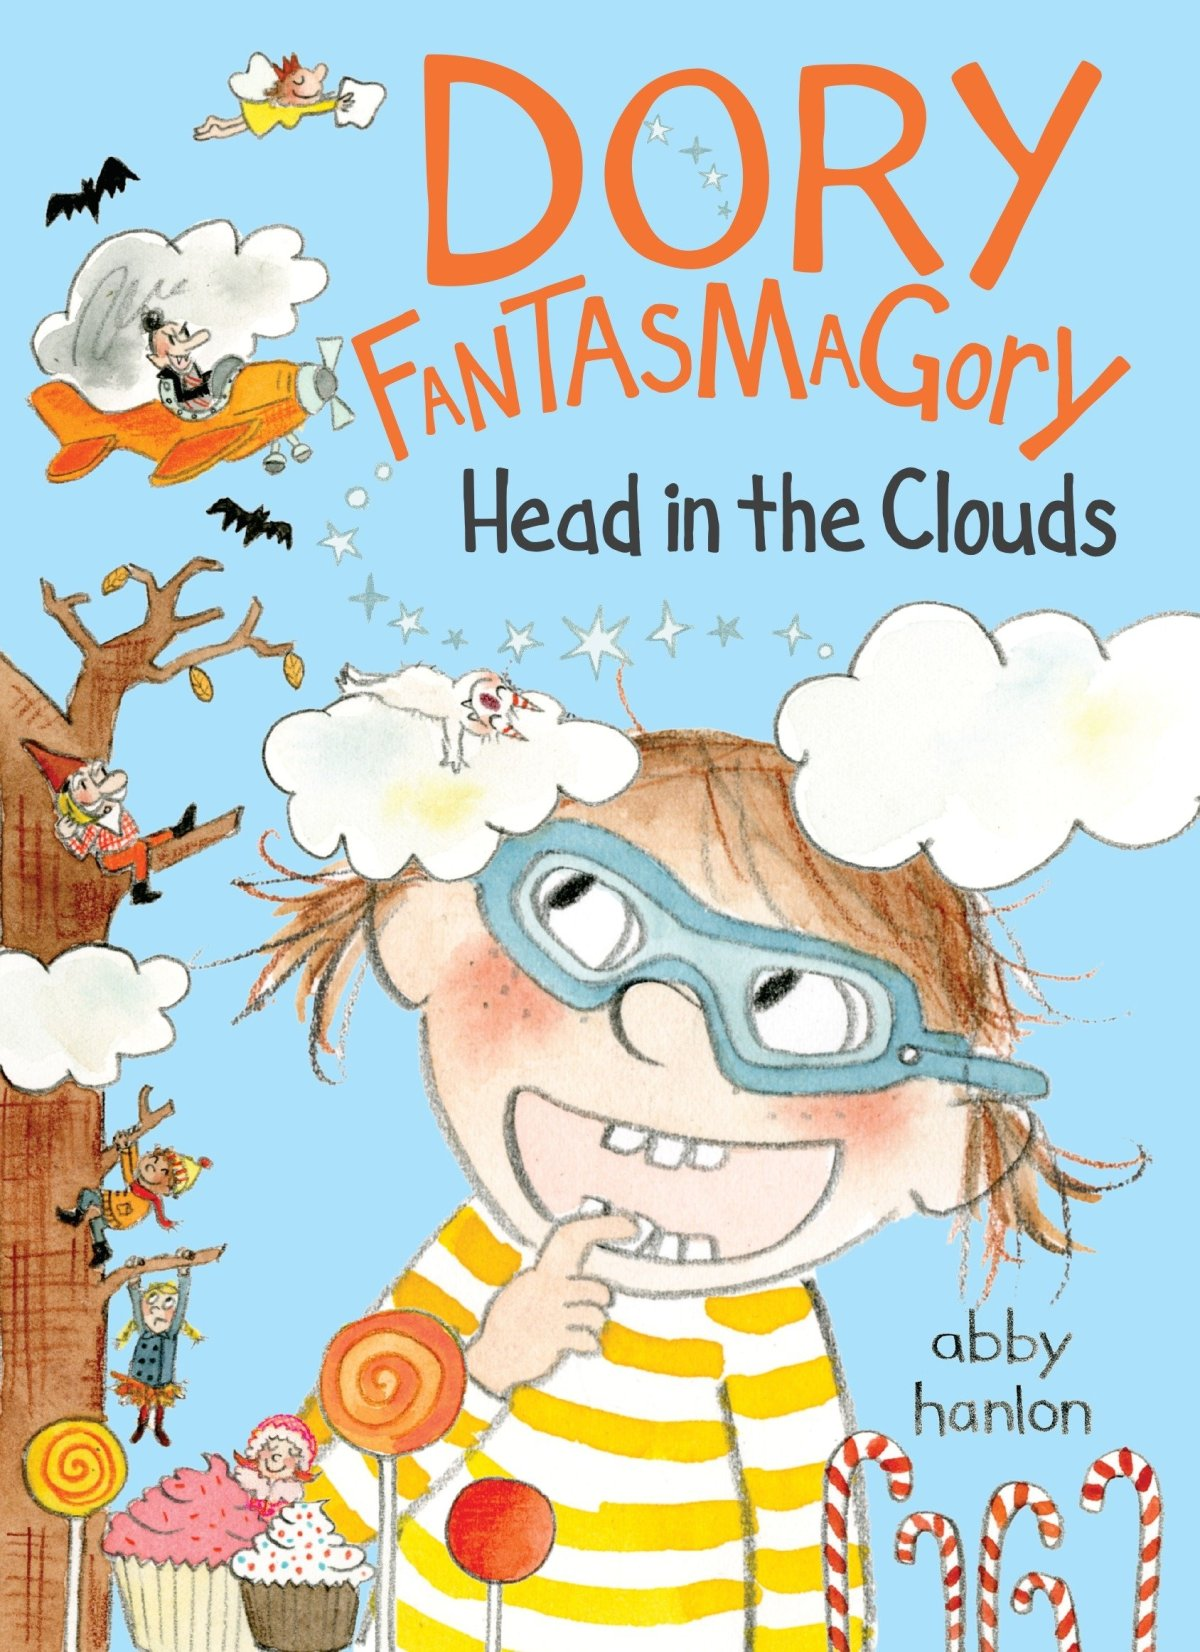 dory head in the clouds cover image